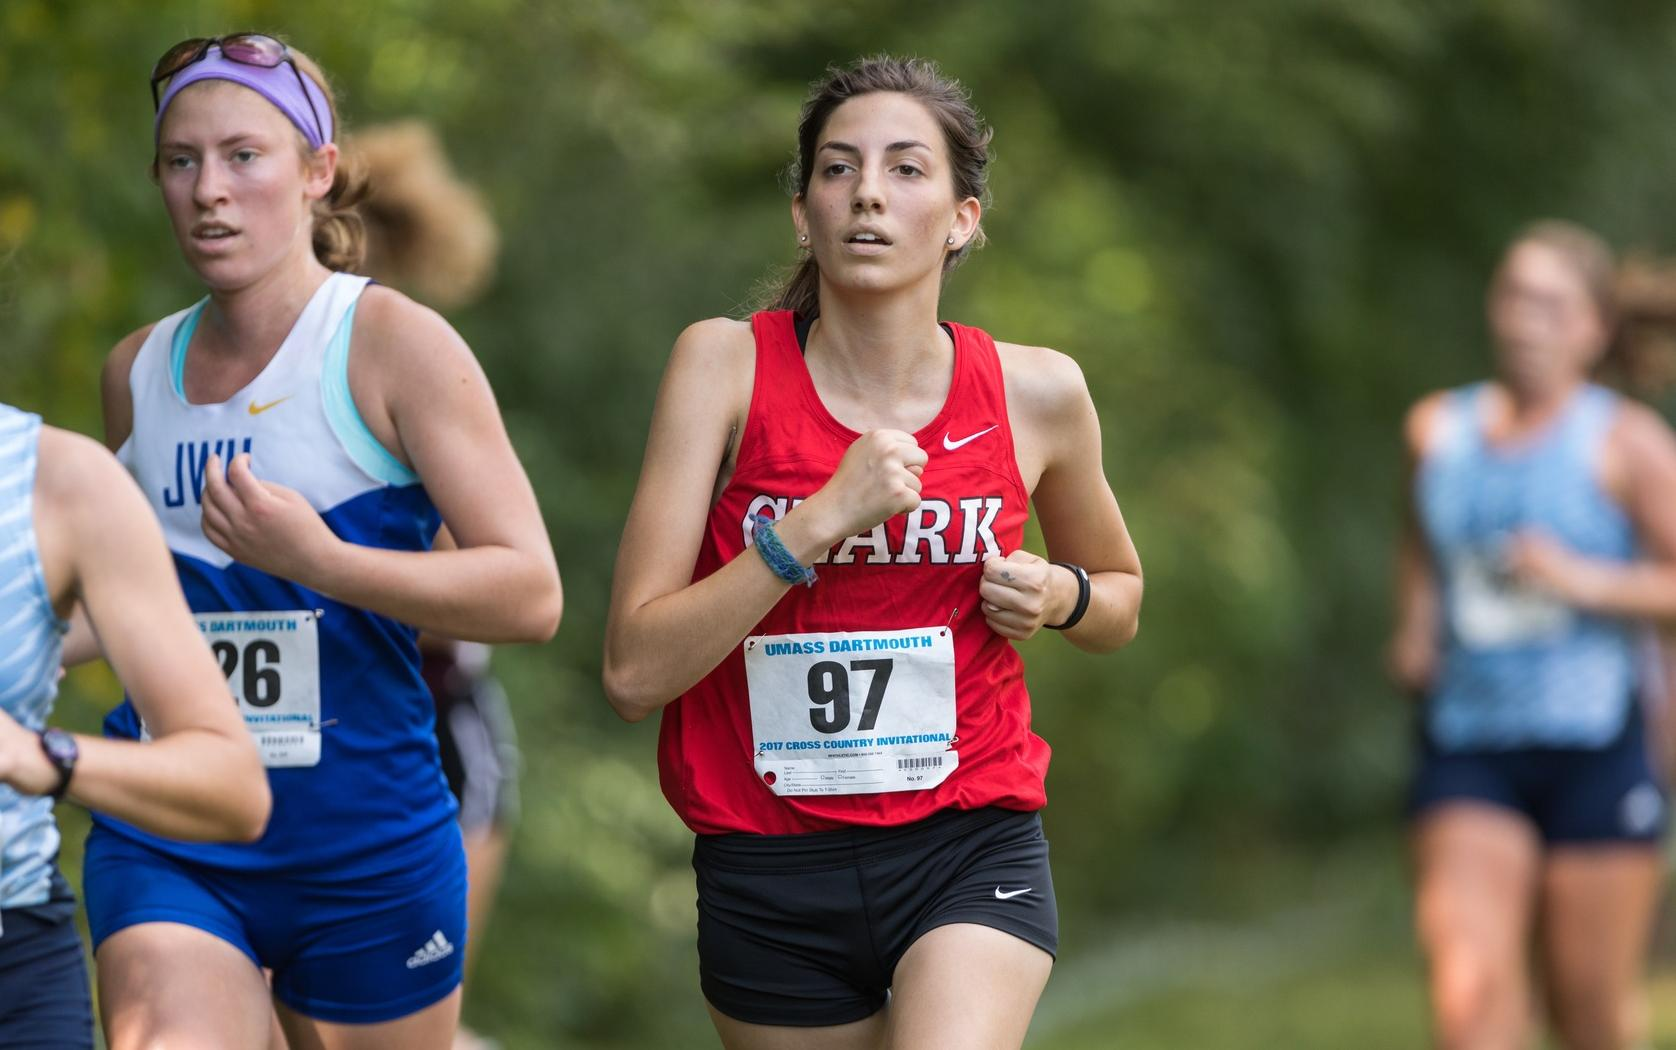 Women's Cross Country Places 13th at James Earley Invitational